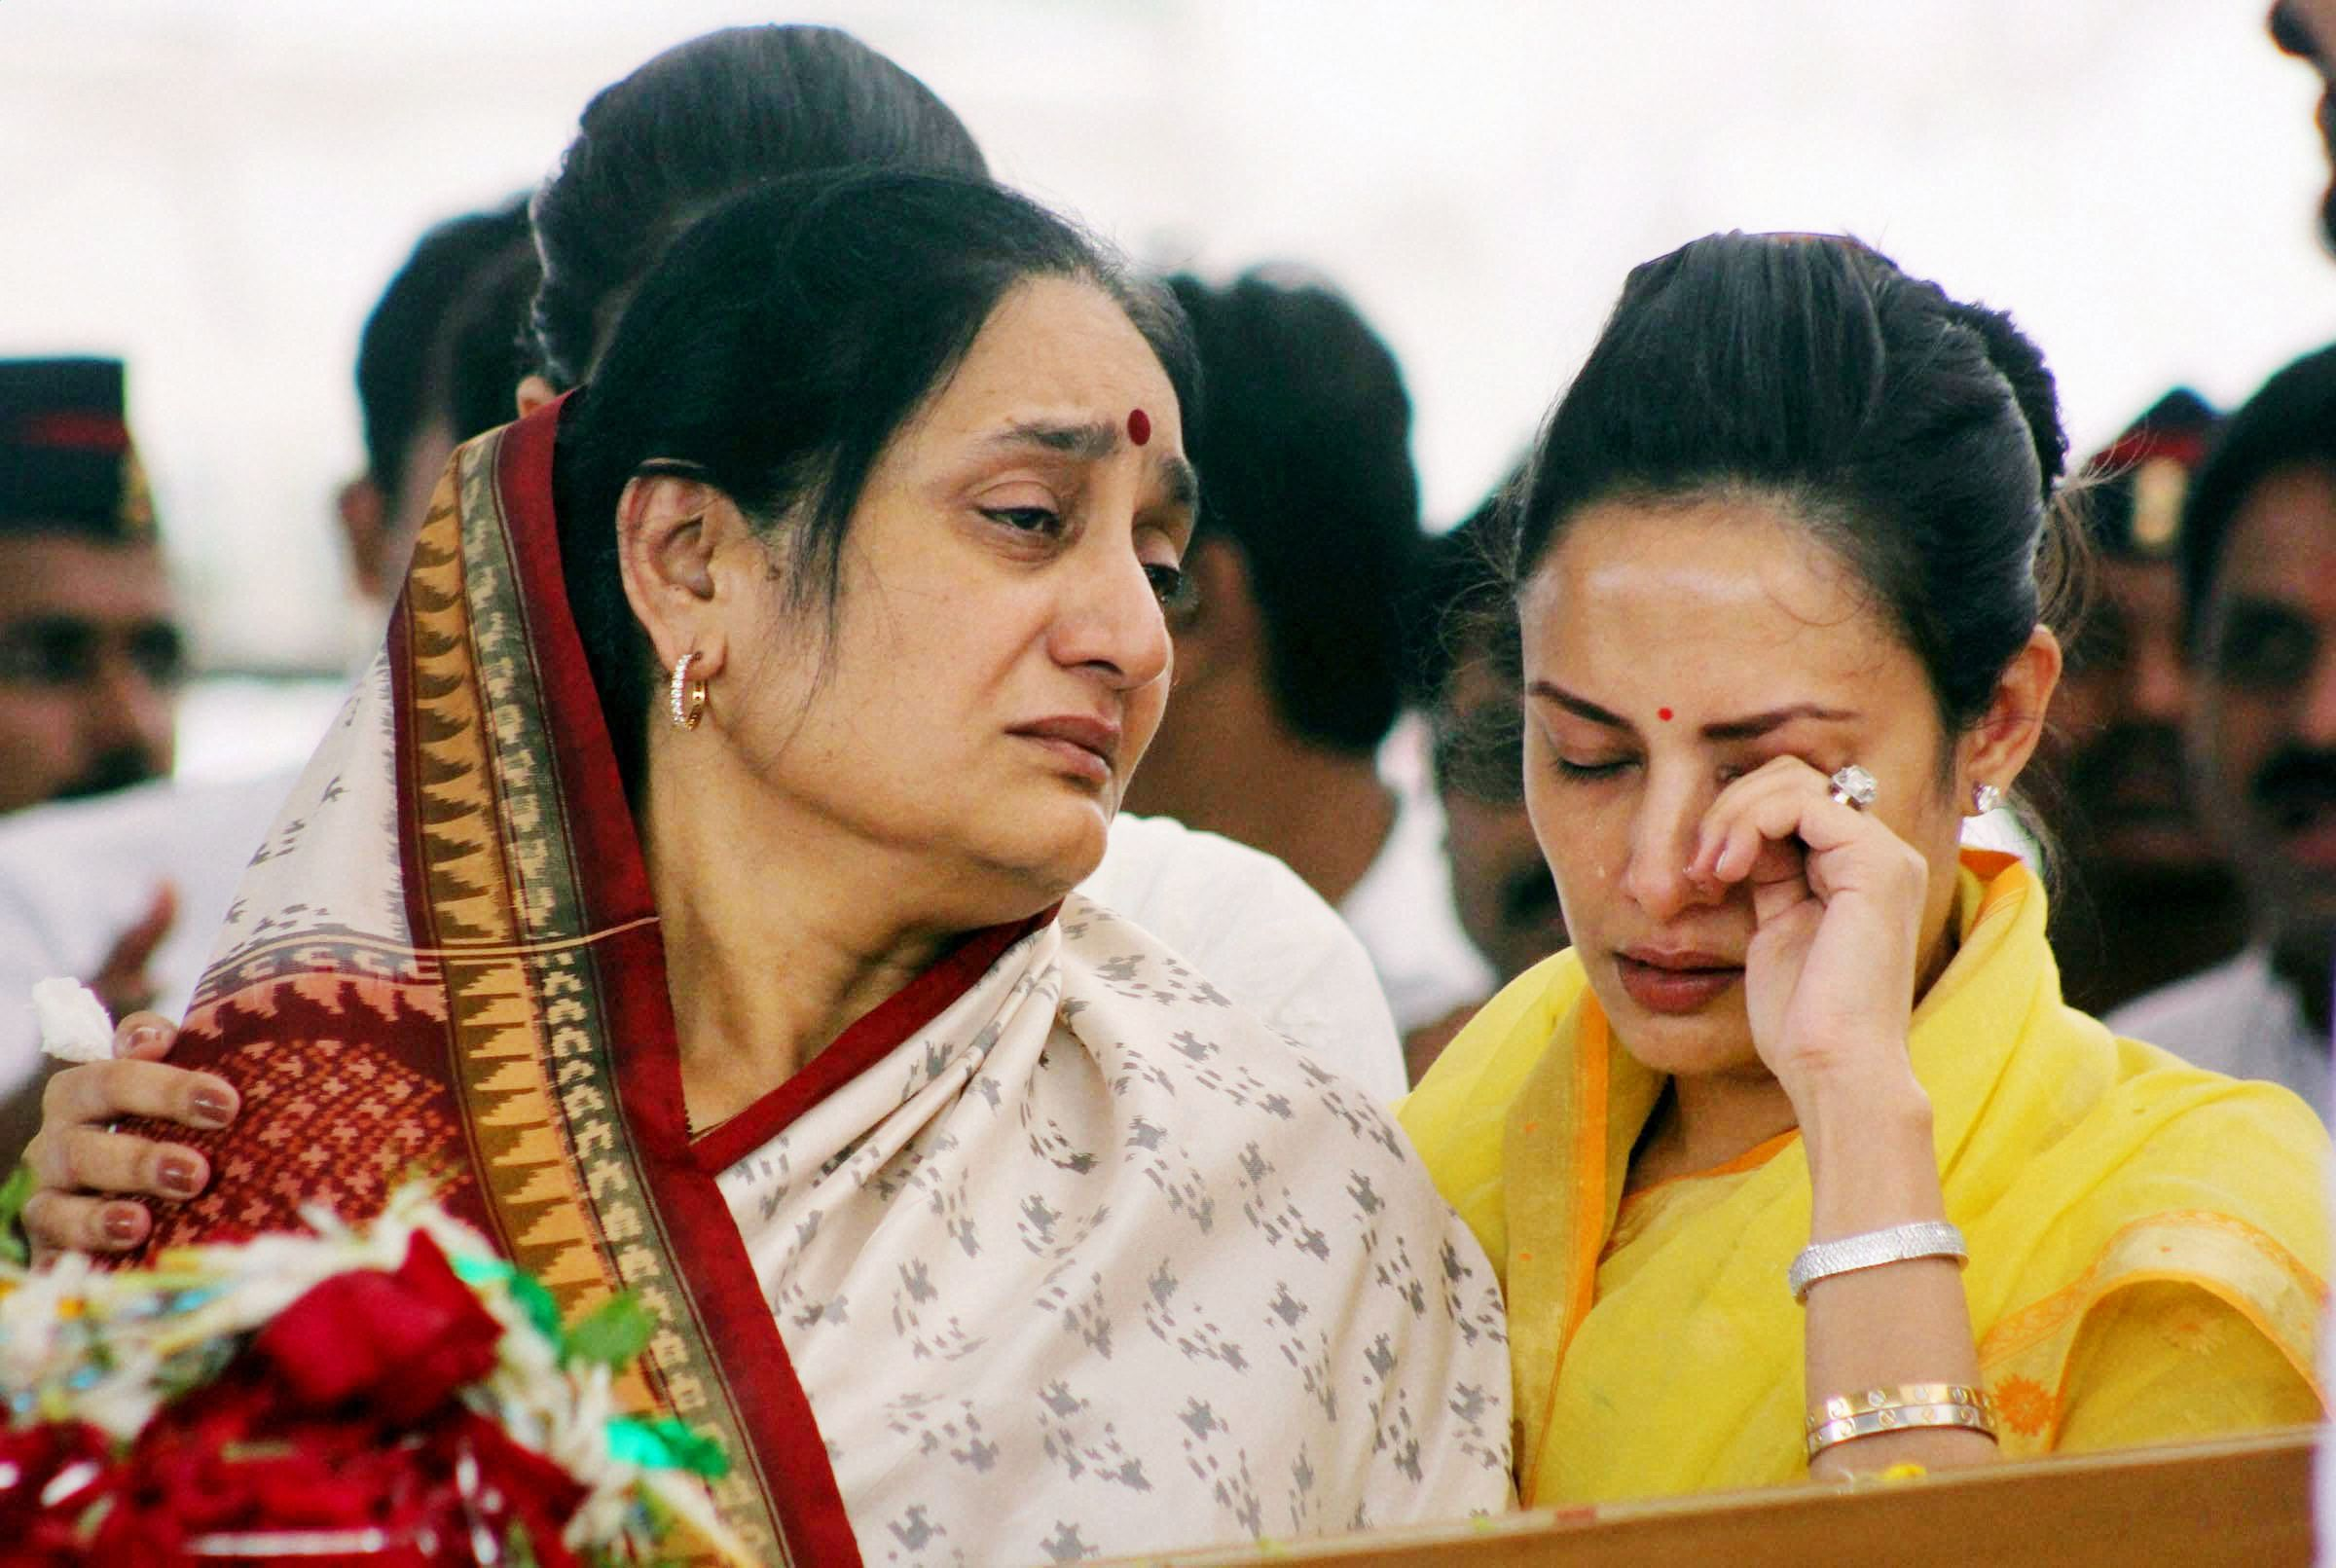 Vaishali Deshmukh in tears during the funeral of Vilasrao Deshmukh at Babhalgaon in Latur on Wednesday.